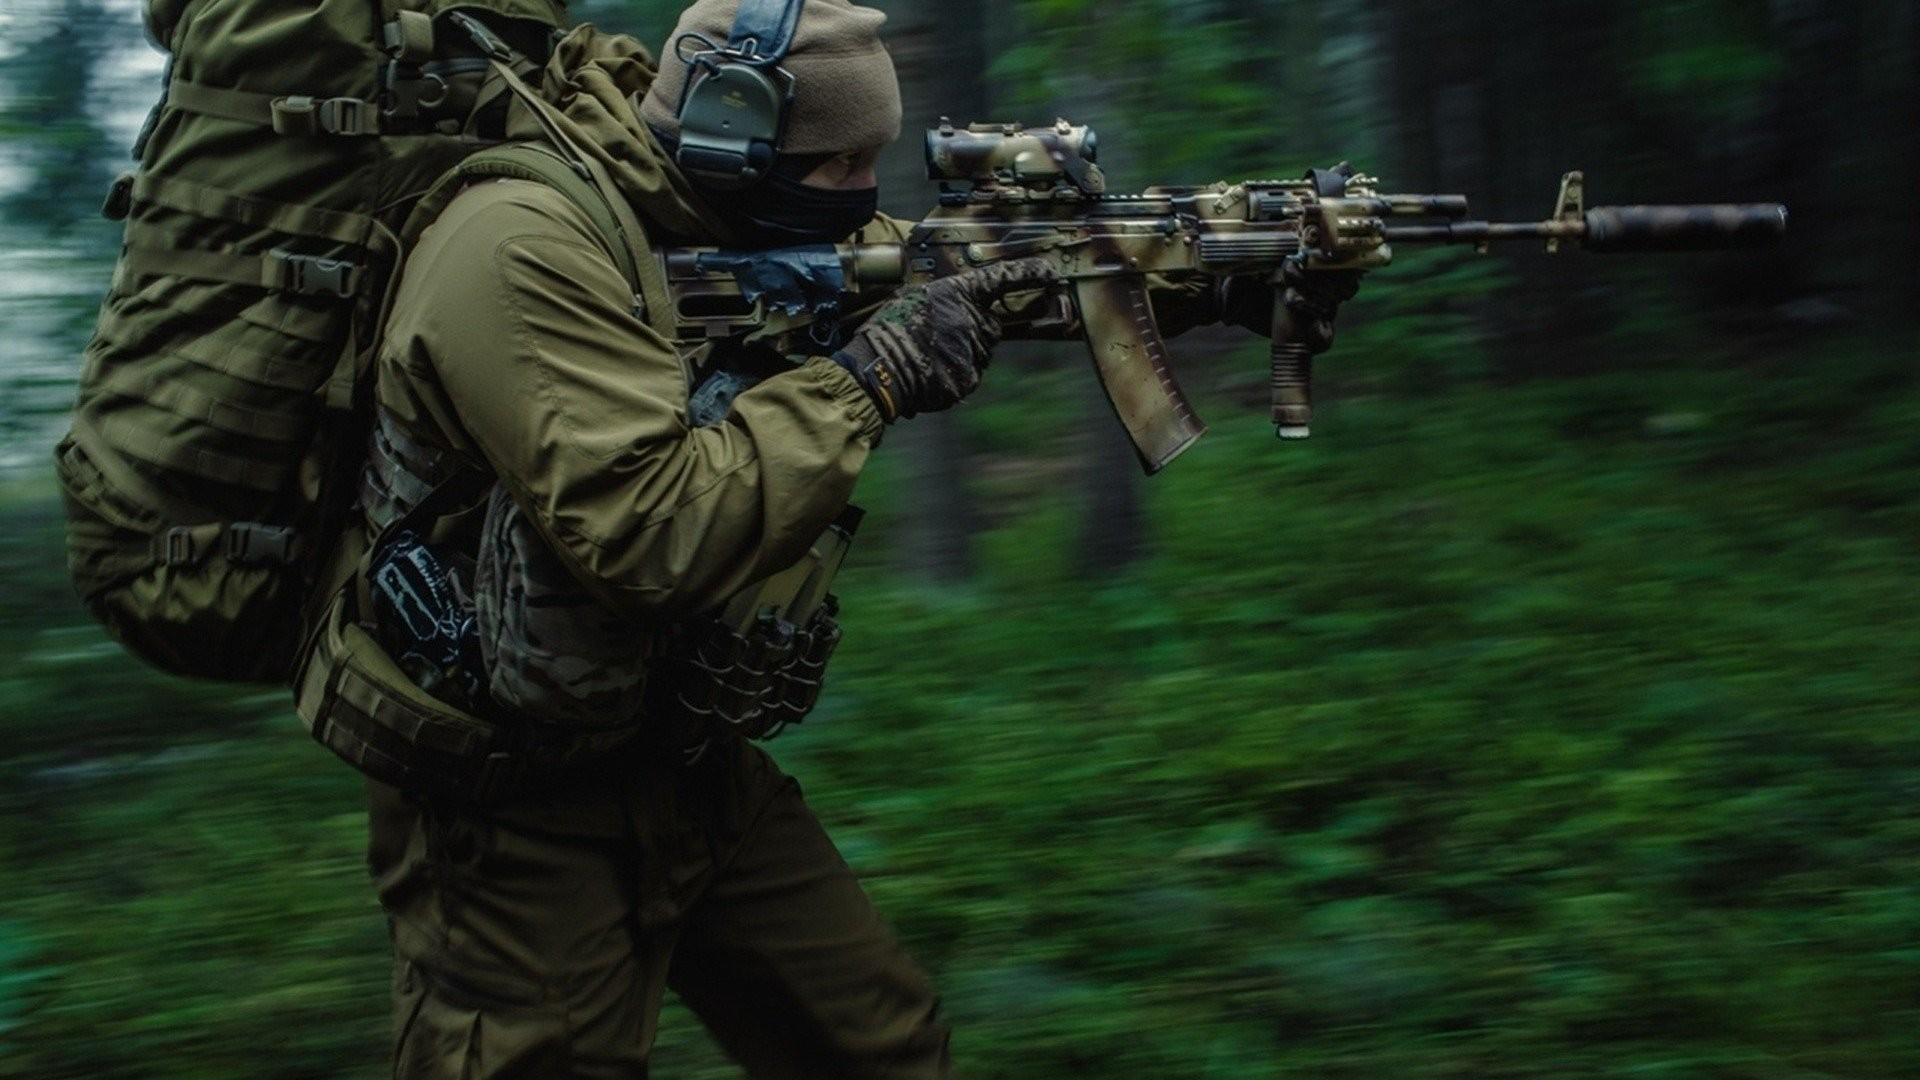 Russian Army Wallpaper Hd 61 Images